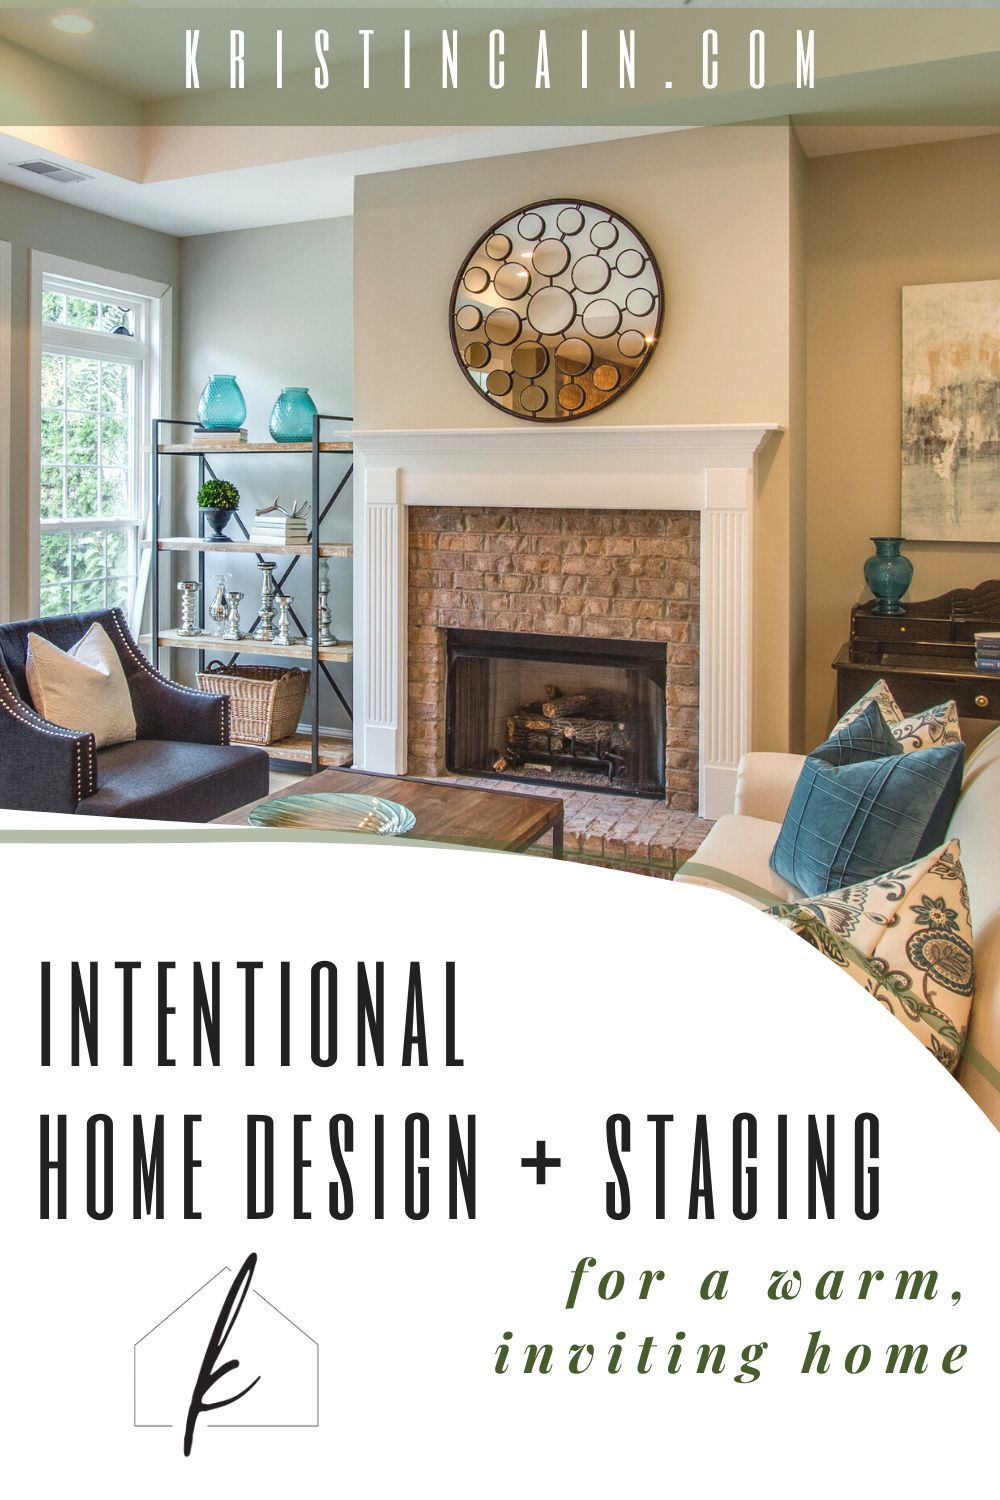 Learn how to create a warm, inviting home with intentional home design and home staging techniques from Kristin Cain, professional Interior Designer!    #interiordesign #designtips #homestaging